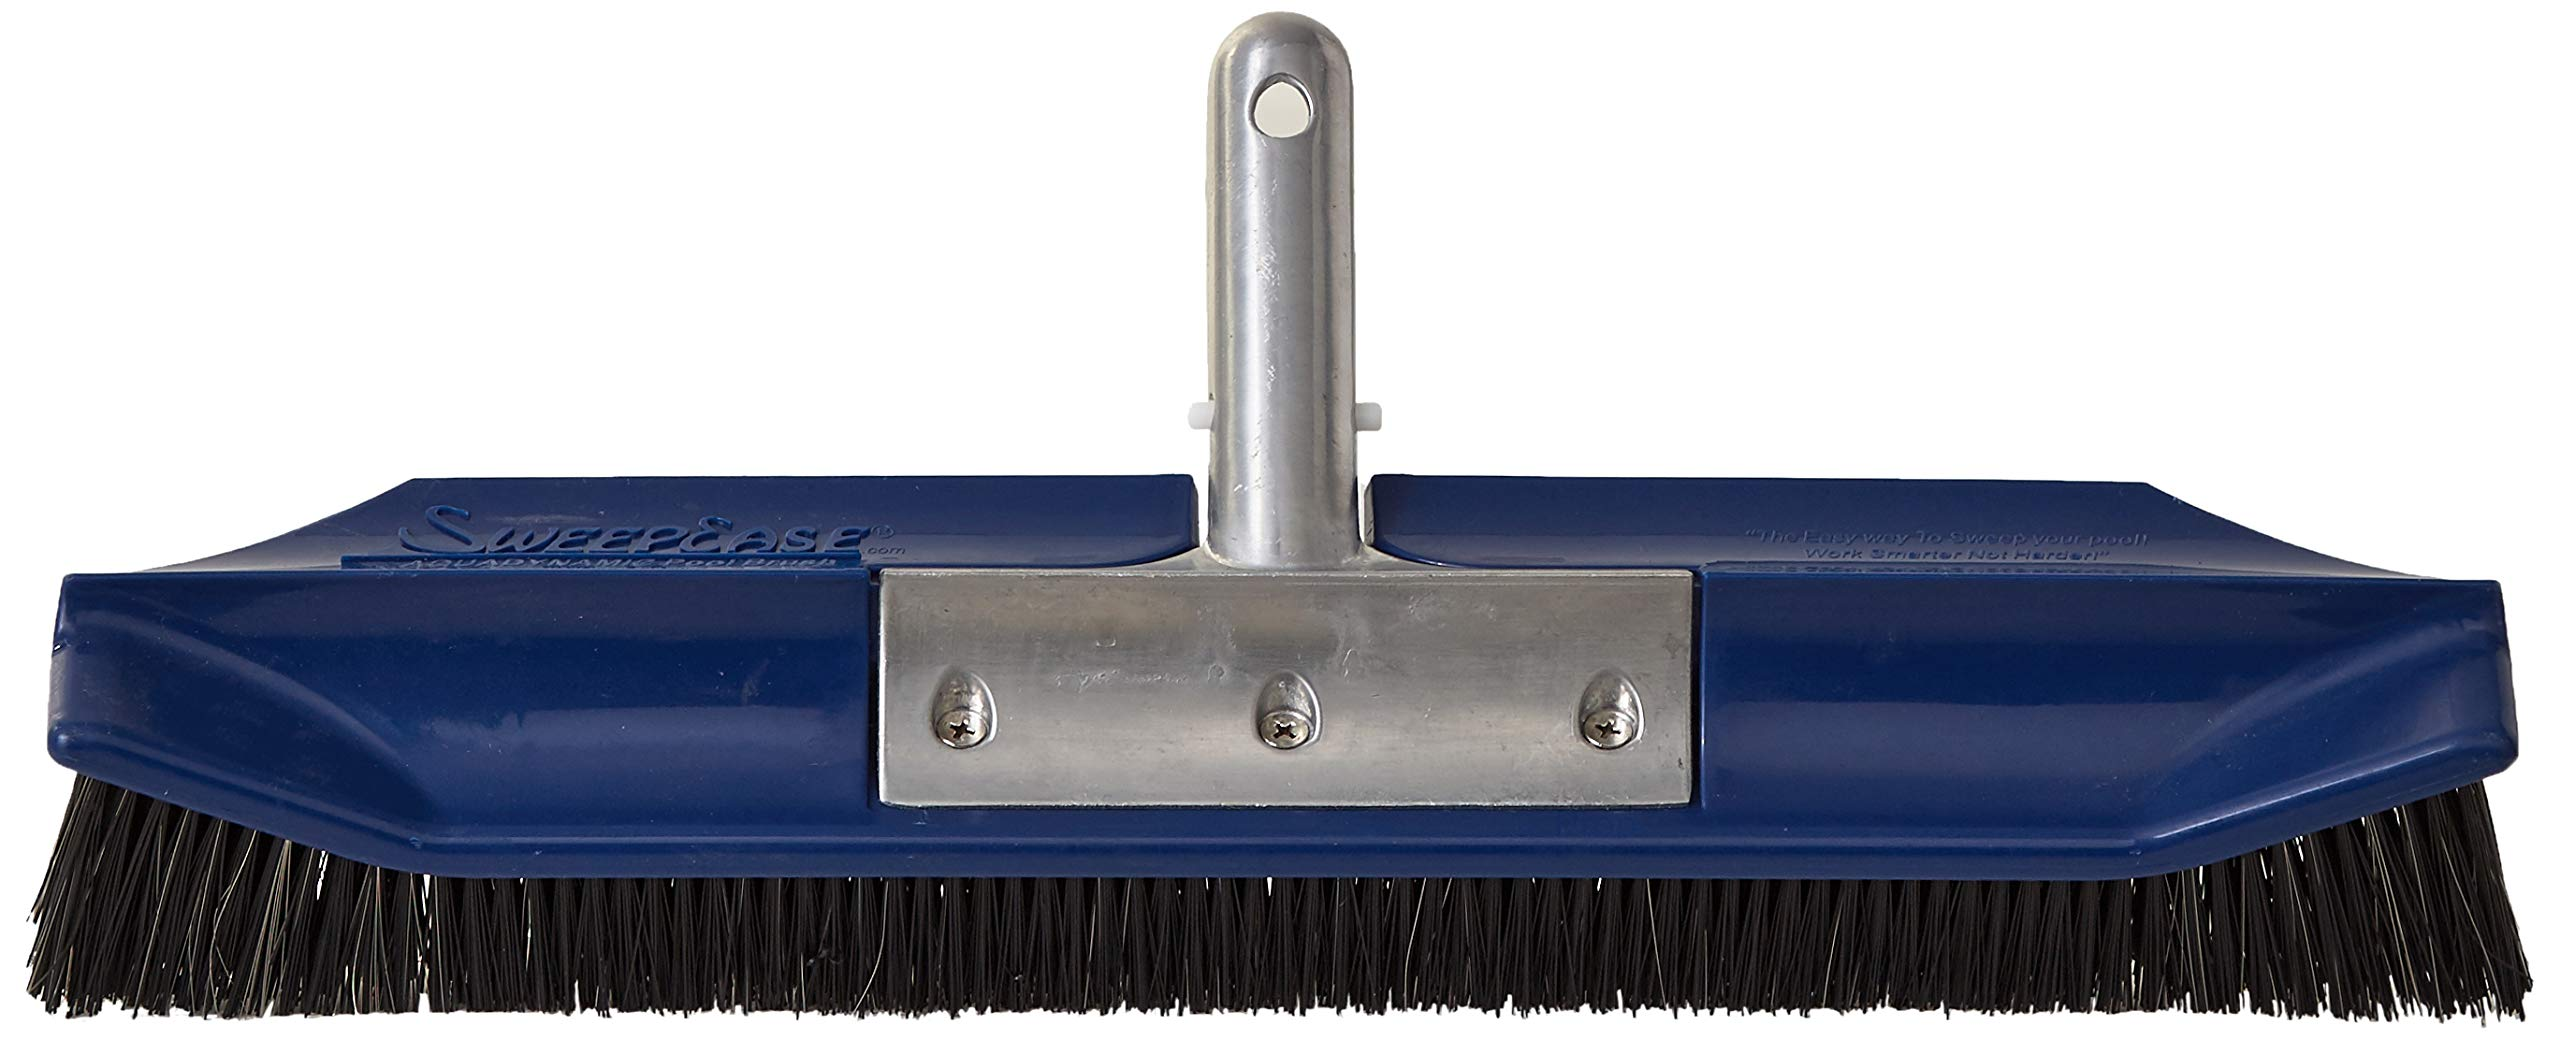 SweepEase SS/Poly Blend Brush AquaDynamic Pool Brush, 18-Inch by SweepEase